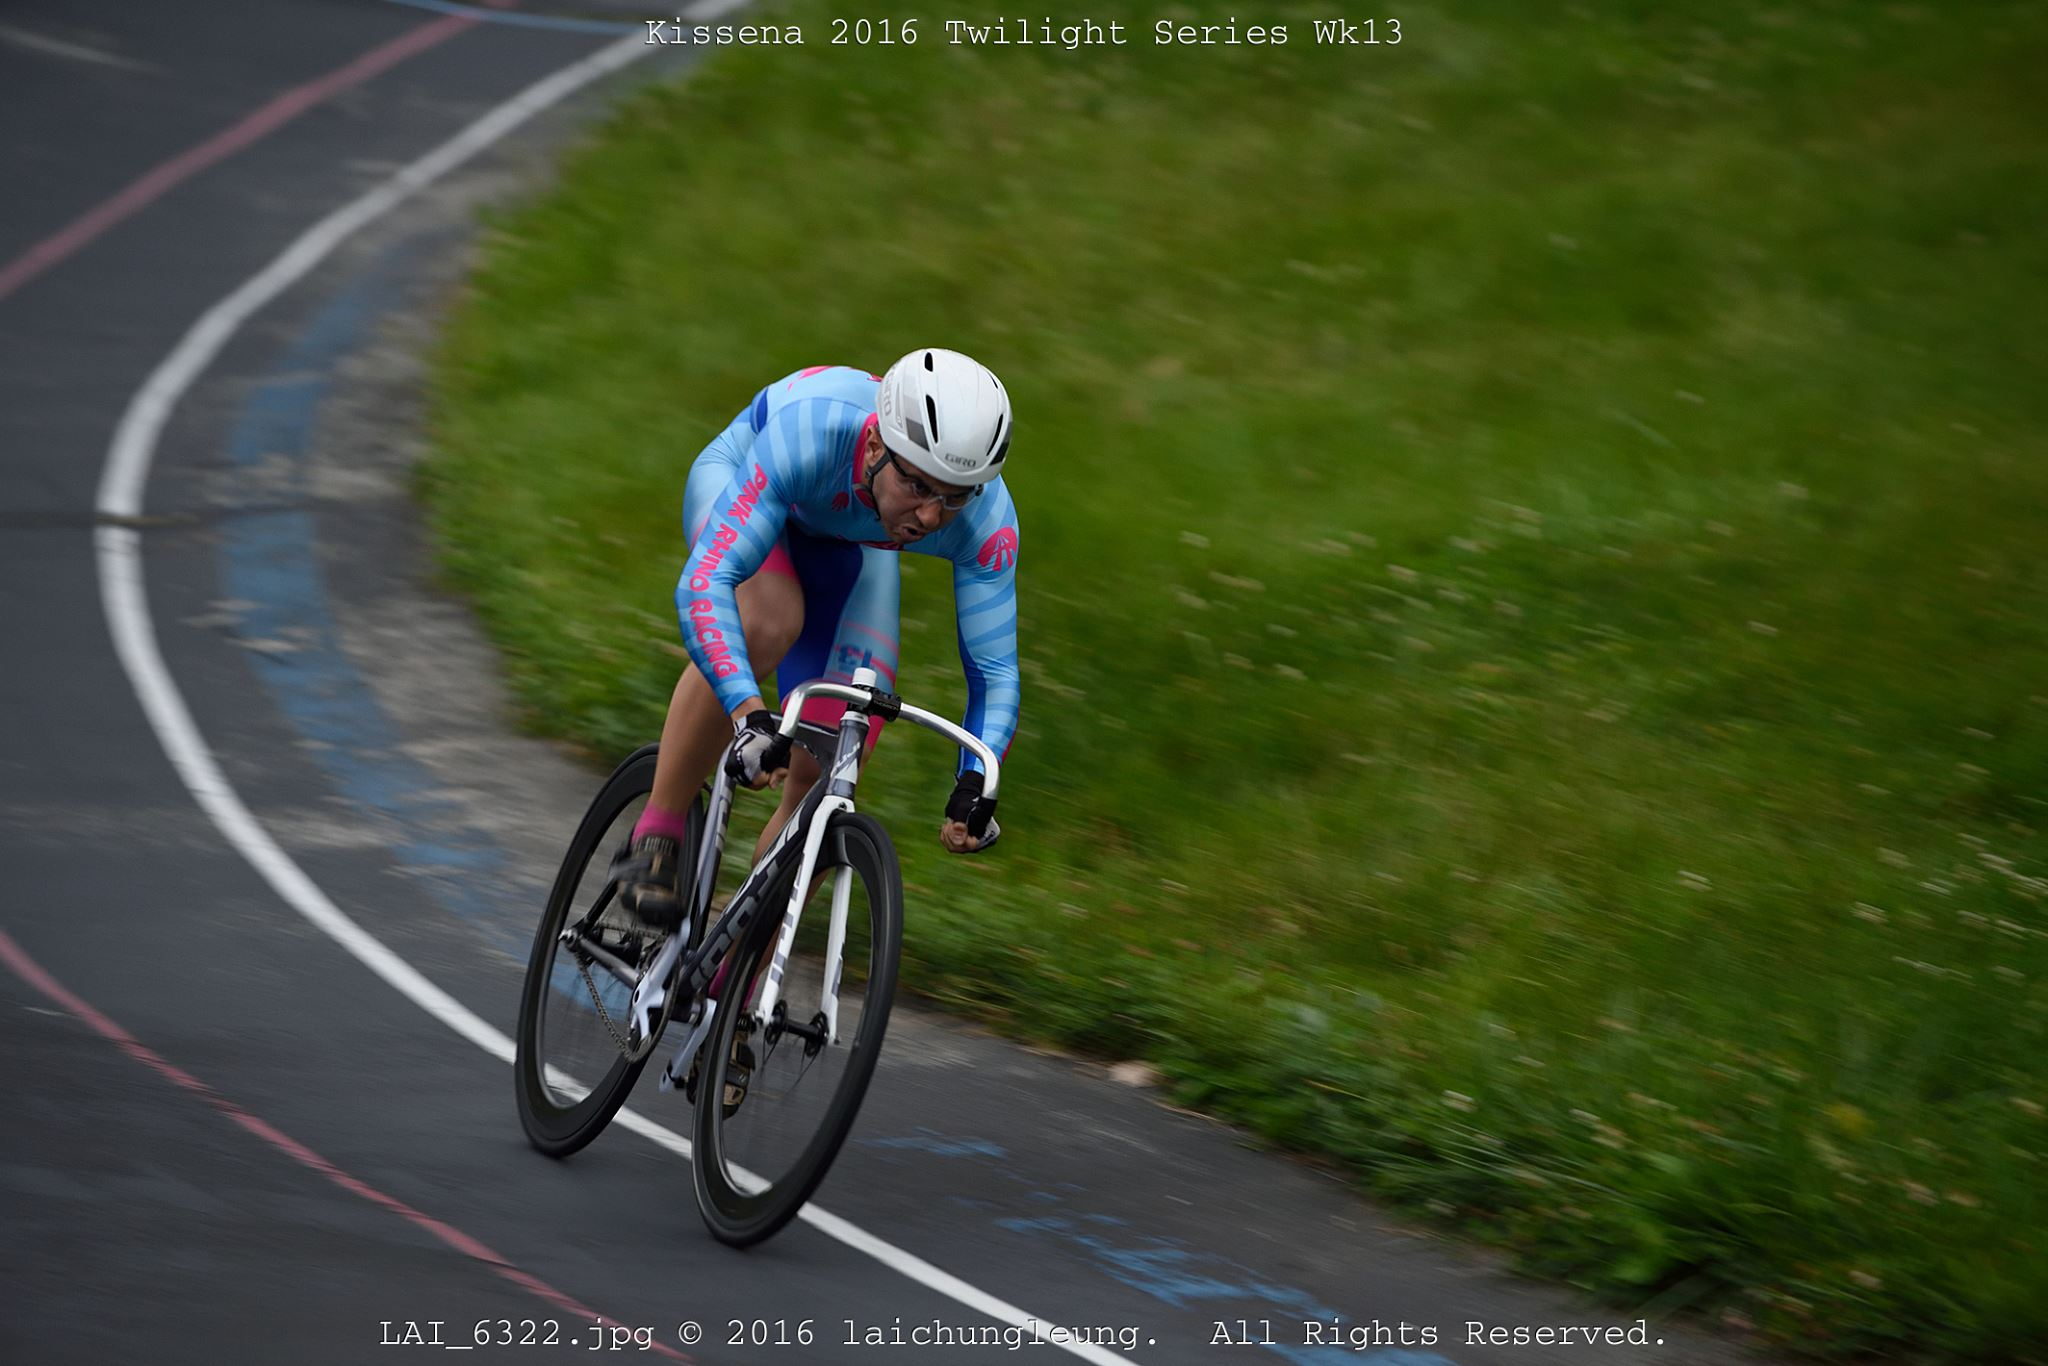 NICK GERSHBERG - HOMETOWN: NYC, NYCURRENT CITY: NYC, NYUSAC CAT: TRACK - THREEYEARS RACING: FOURACHIEVEMENTS: FINISHING A RACE SECOND AFTER AN EARLIER CRASH THAT BROKE FOUR RIBS; NYS TRACK CHAMPIONSHIPS SCRATCH RACE BRONZE MEDAL (M123)WHO WOULD PLAY YOU IN A MOVIE: CATE BLANCHETTFUN FACT: